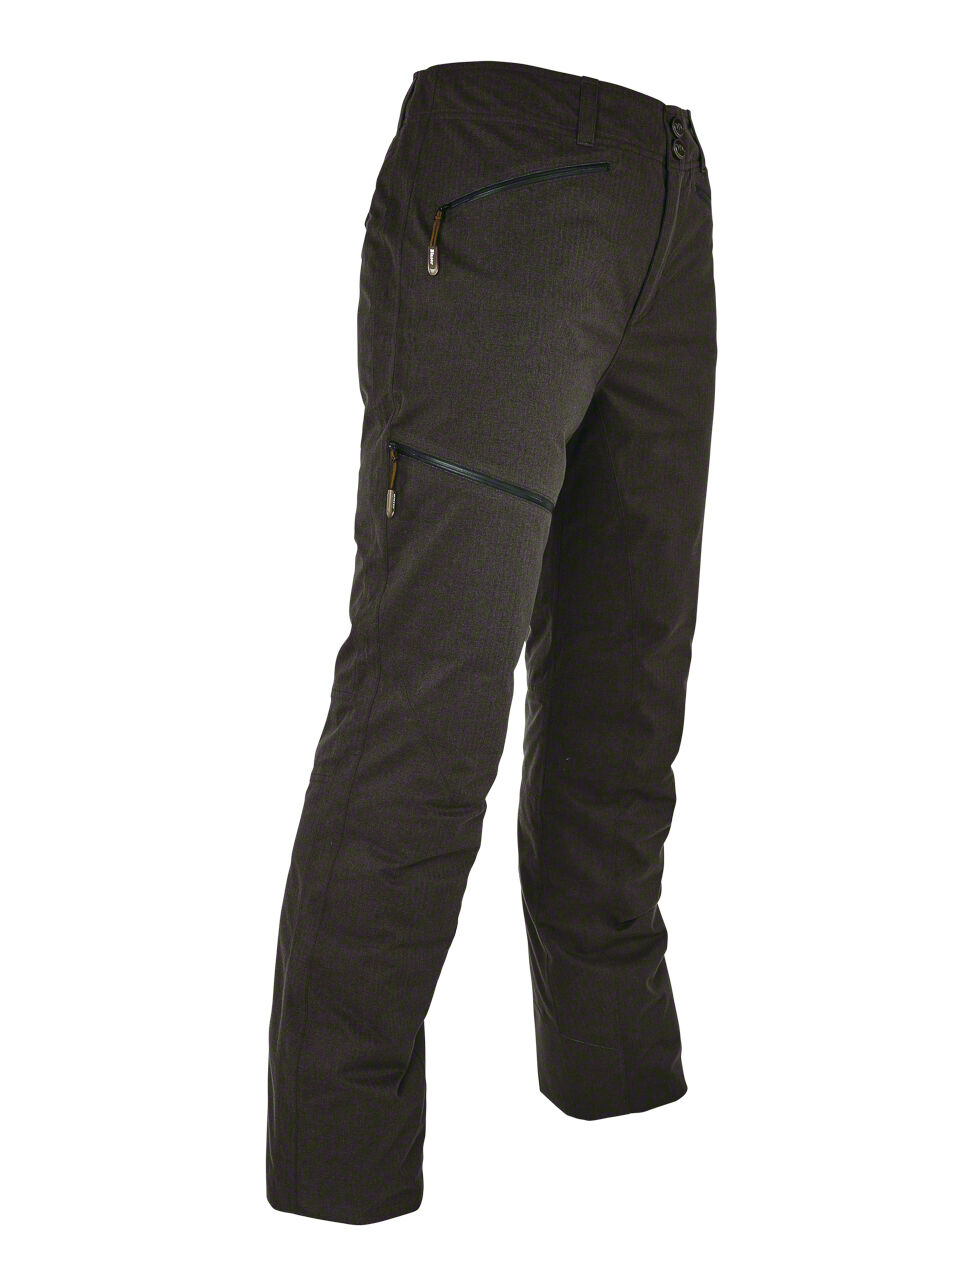 Blaser Hunting Trousers Down Pirmin - Maroon Melange - 116089-027   fast shipping to you